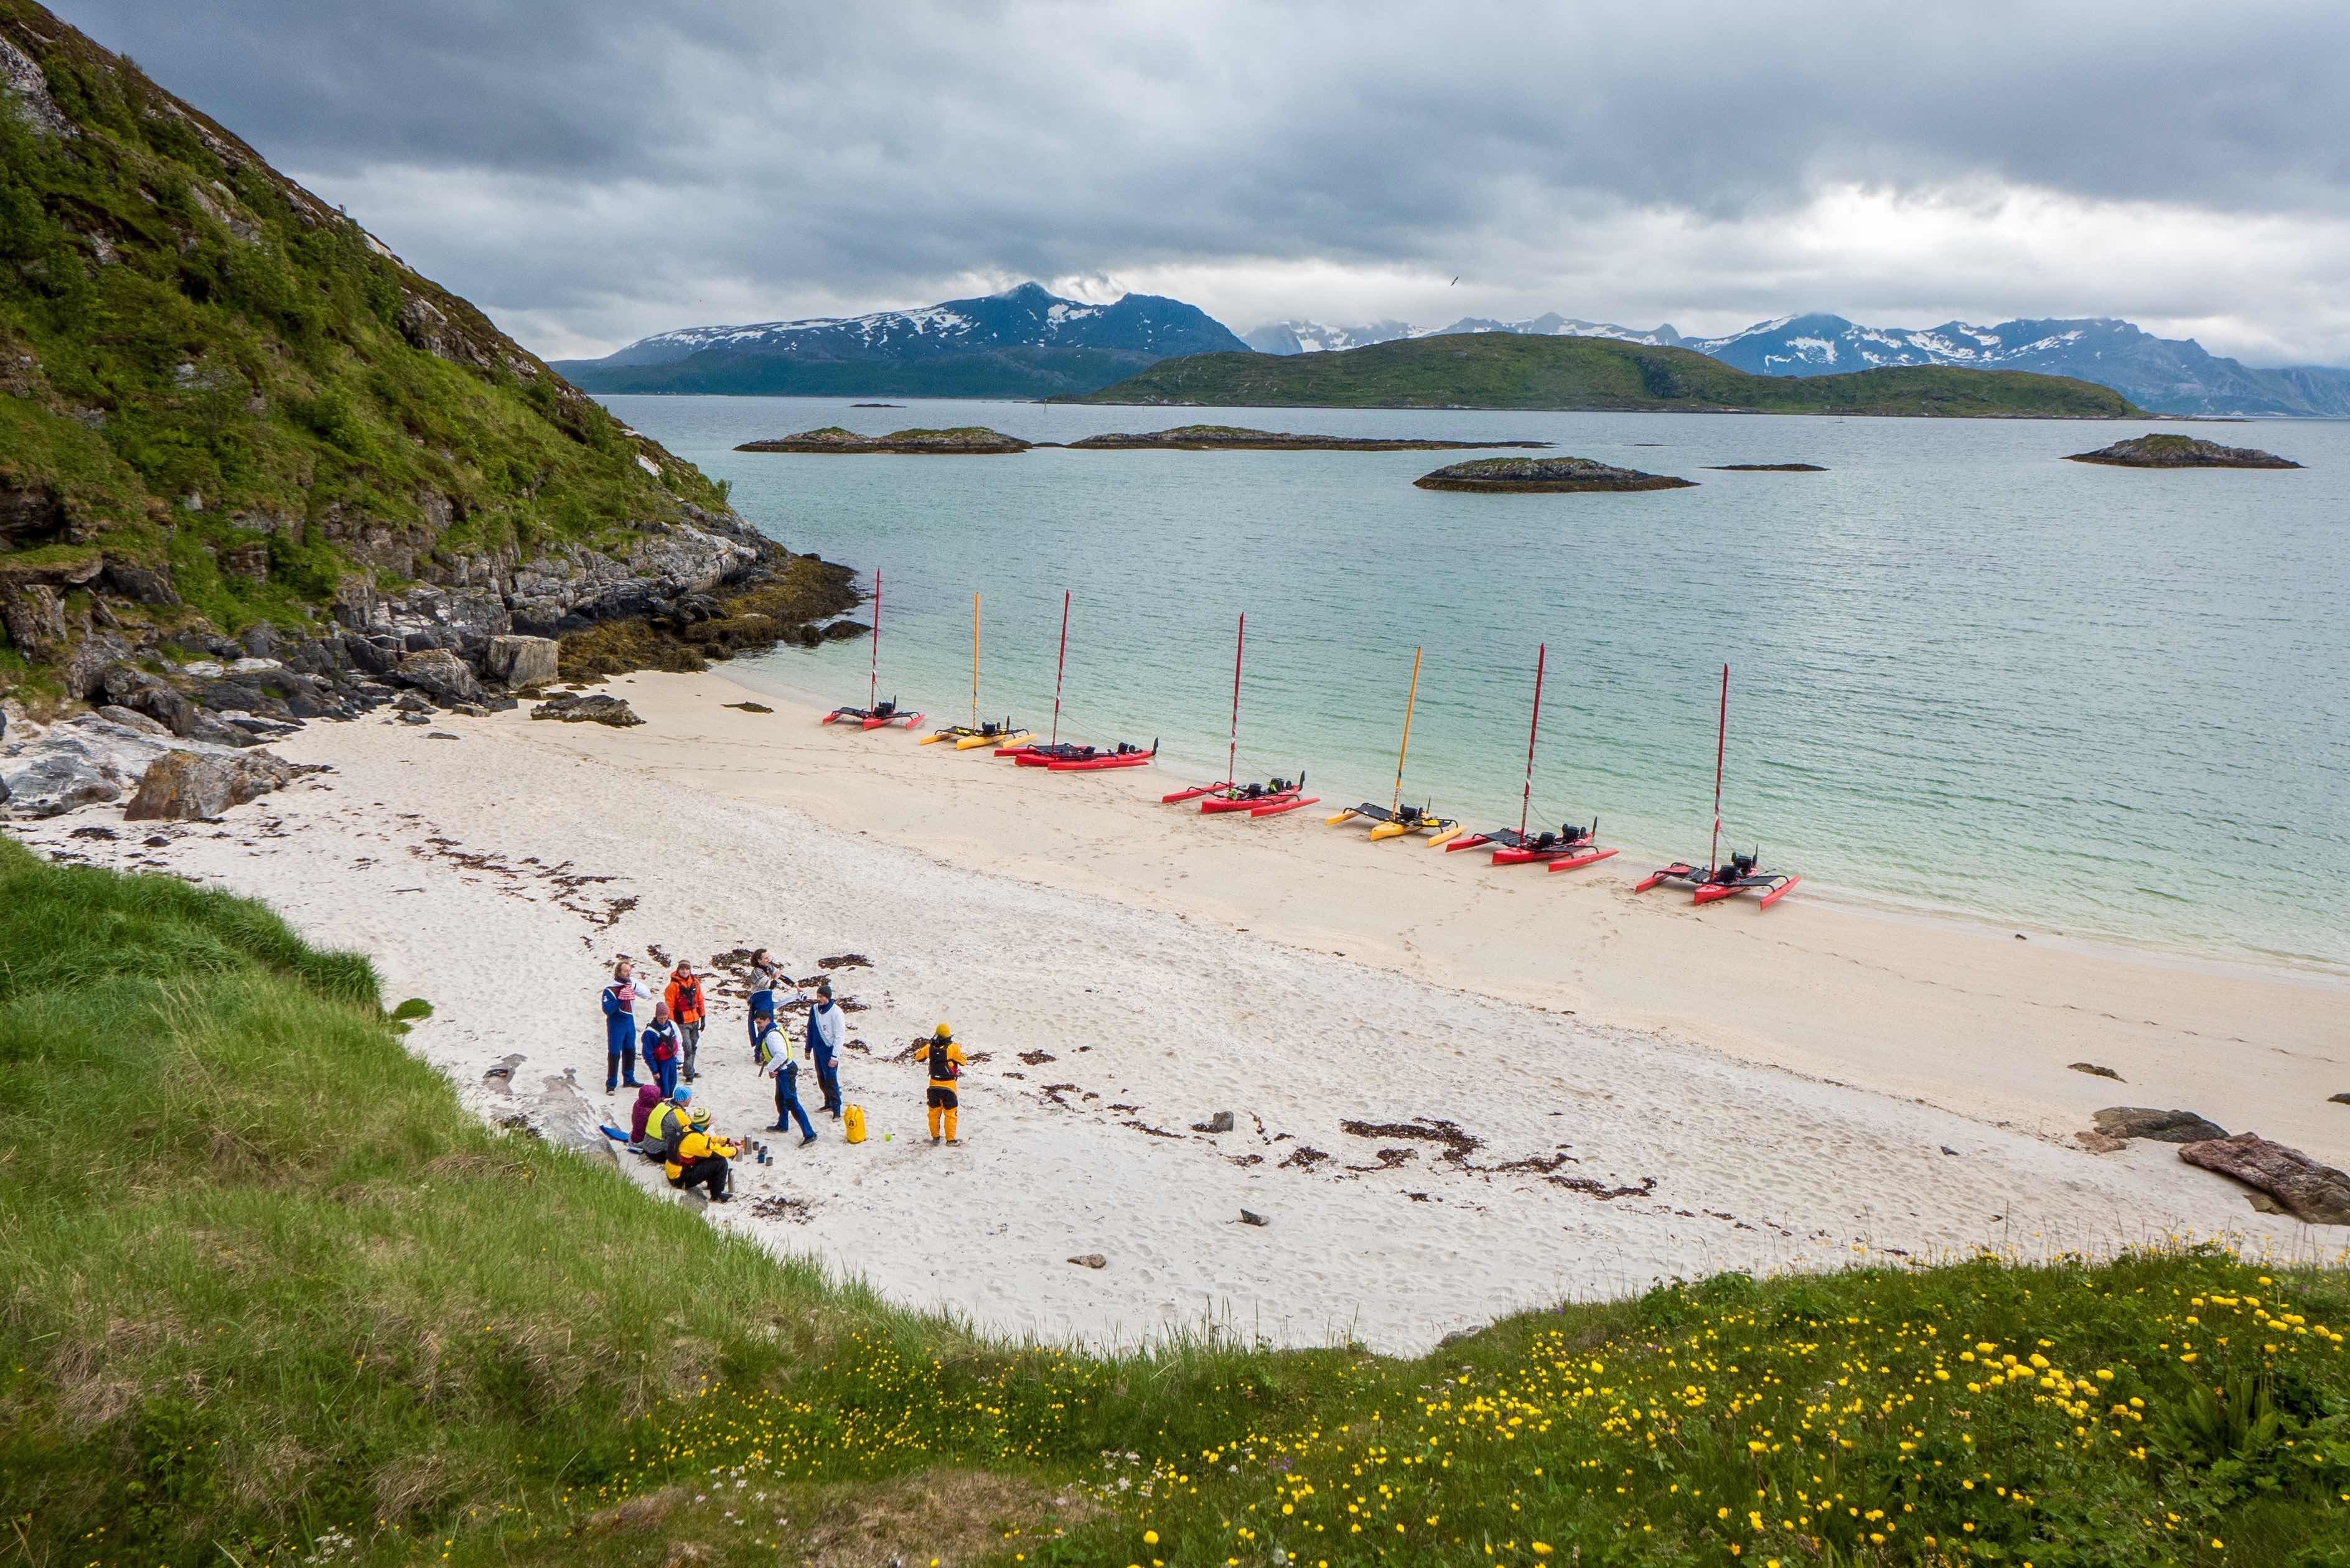 David Gonzales,  © 69 Nord Outdoor Center, Week-end and short stay trip by sailing kayak off the beaten path – 69 Nord Sommarøy Outdoor Center